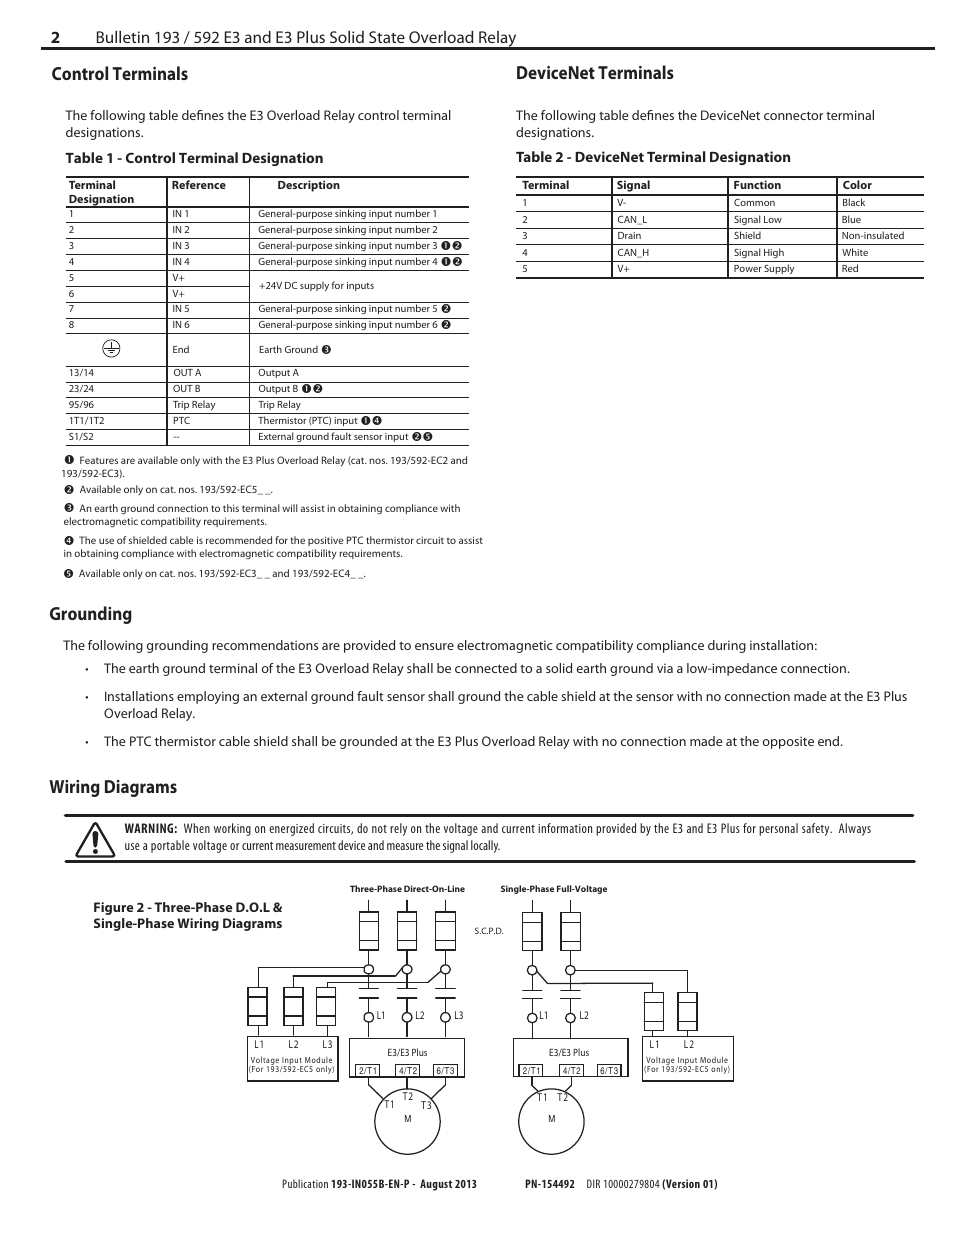 medium resolution of control terminals grounding devicenet terminals wiring diagrams table 1 control terminal